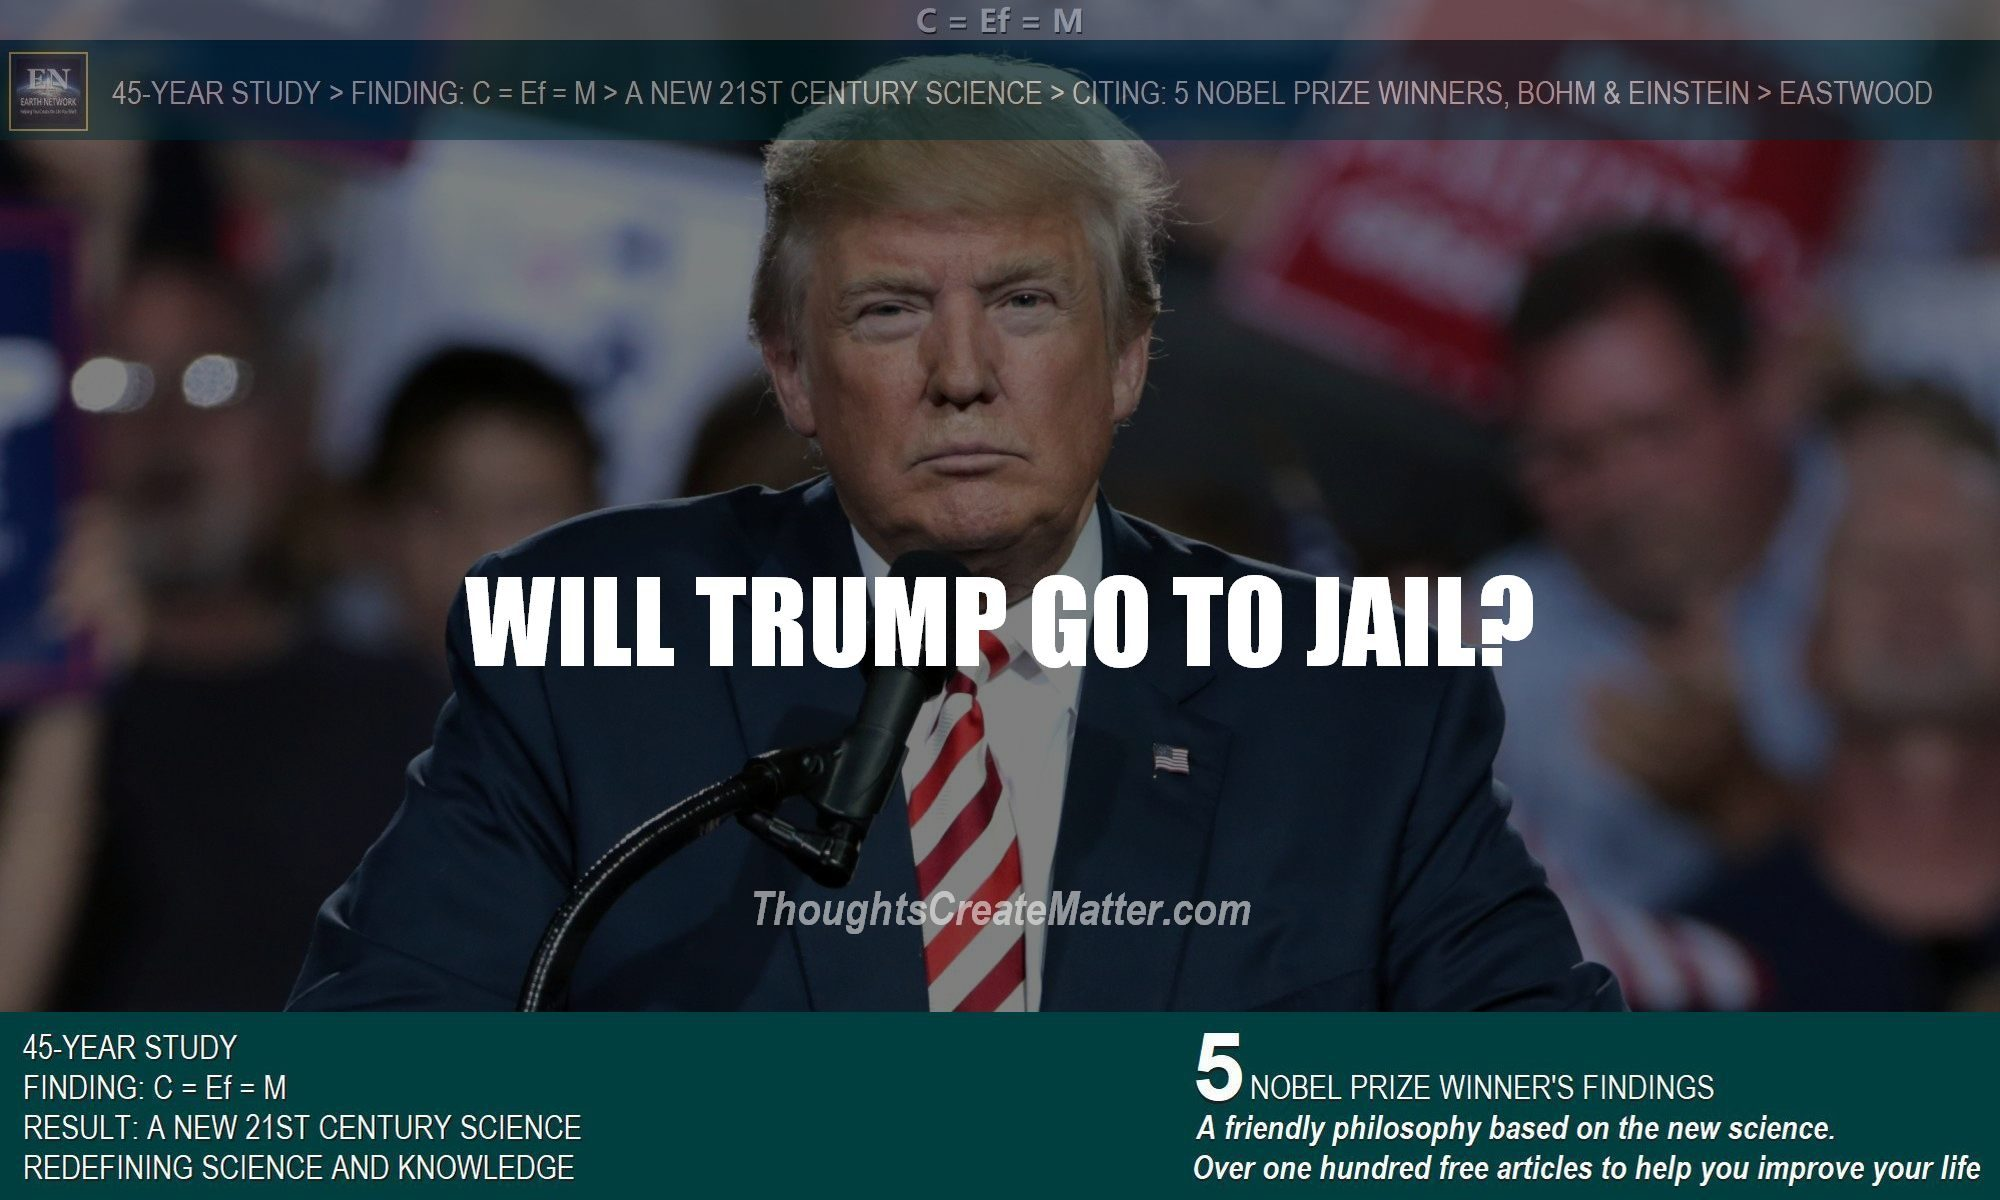 Trump frowning begs the question will trump go to jail? What is the underlying cause of problems and extremism? Will indictment and charges lead to possible prison time?